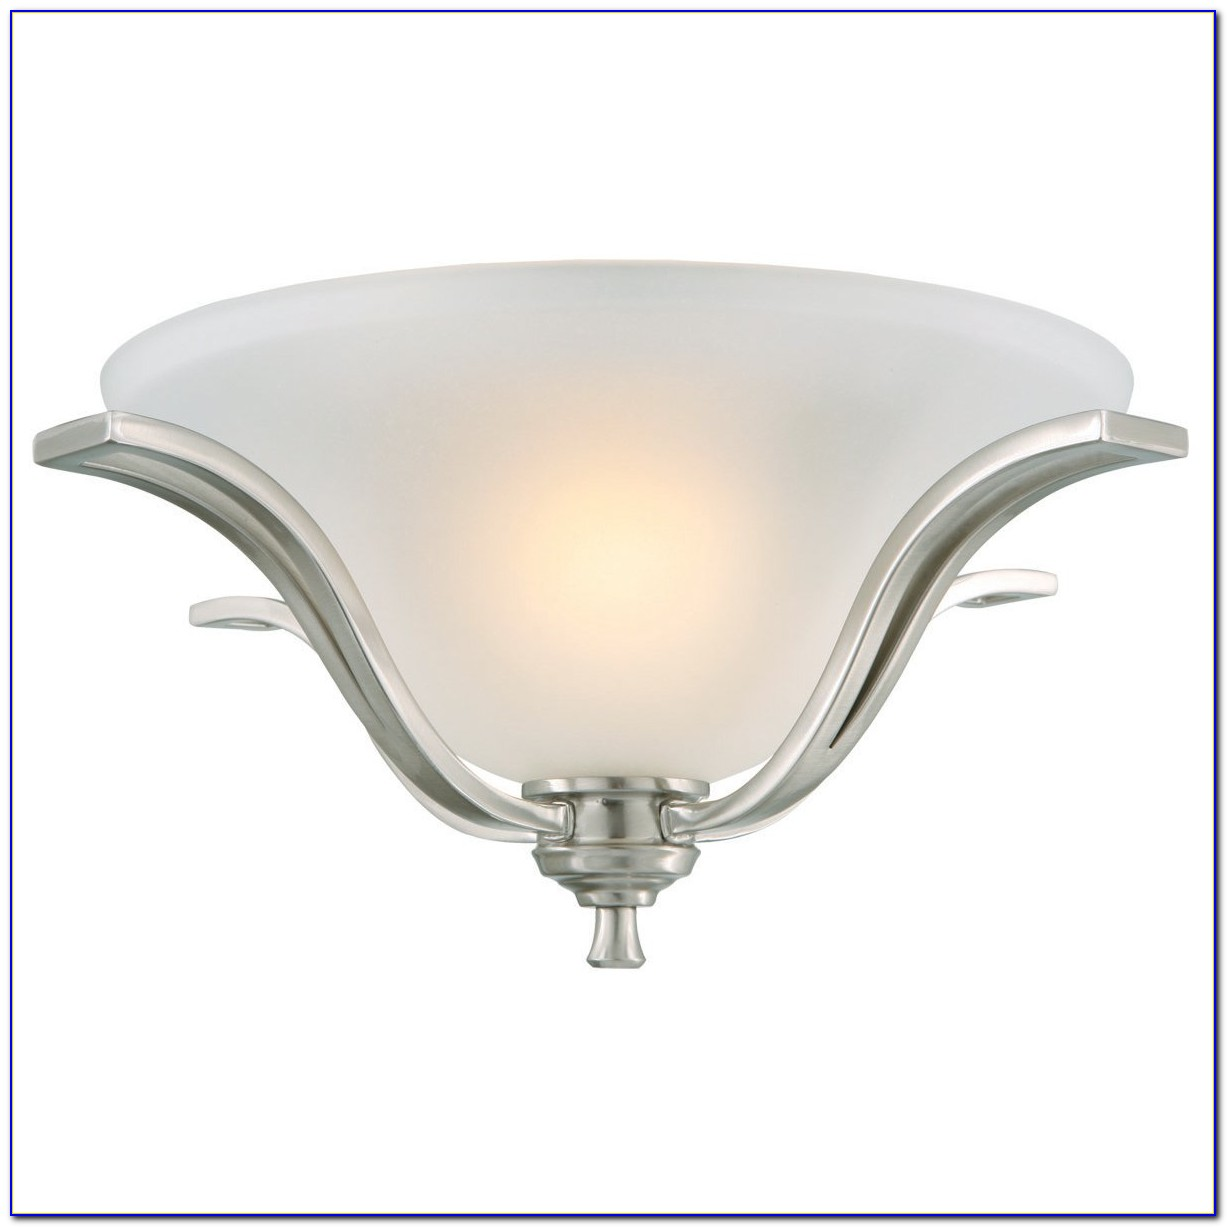 Brushed Nickel Flush Mount Ceiling Light